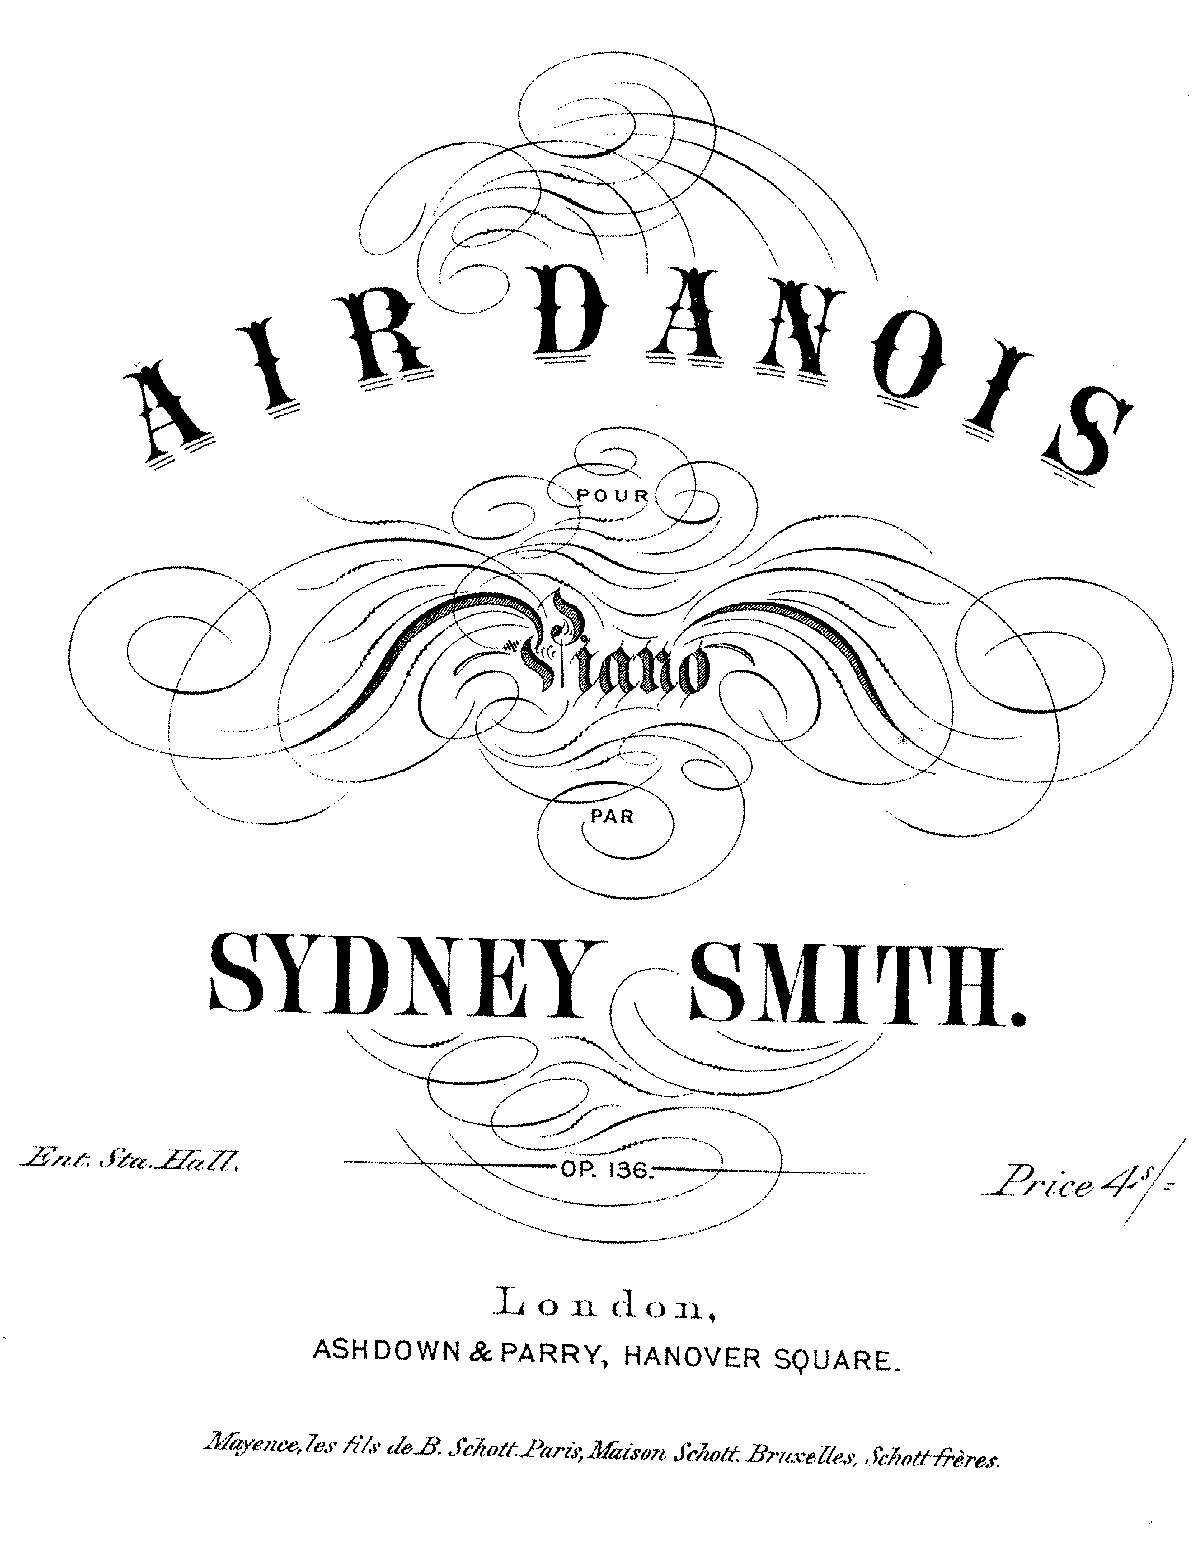 PMLP113119-Smith, Sydney op.136 air danois.pdf